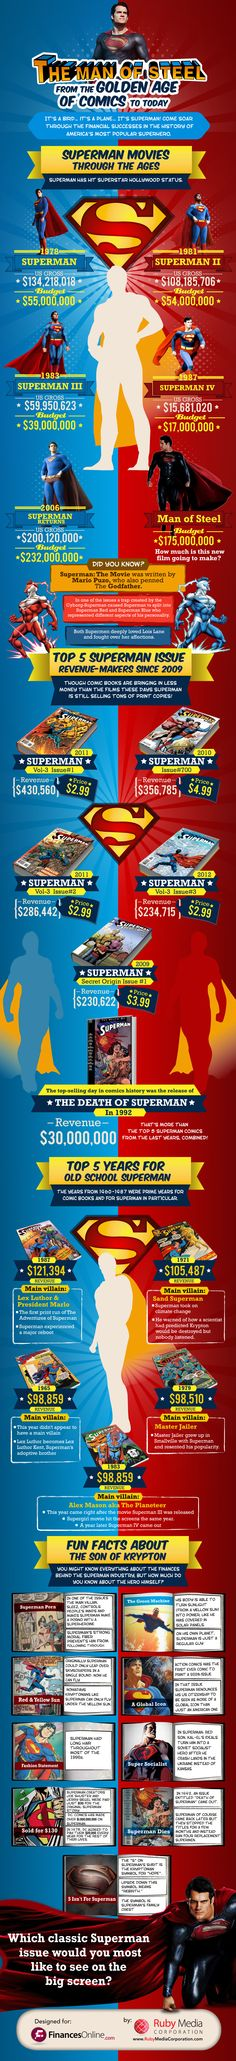 Superman movies are doing better than books, but DC Comics' multi-issue story The Death of Superman earned in 1992 alone as much as $30,000,000!